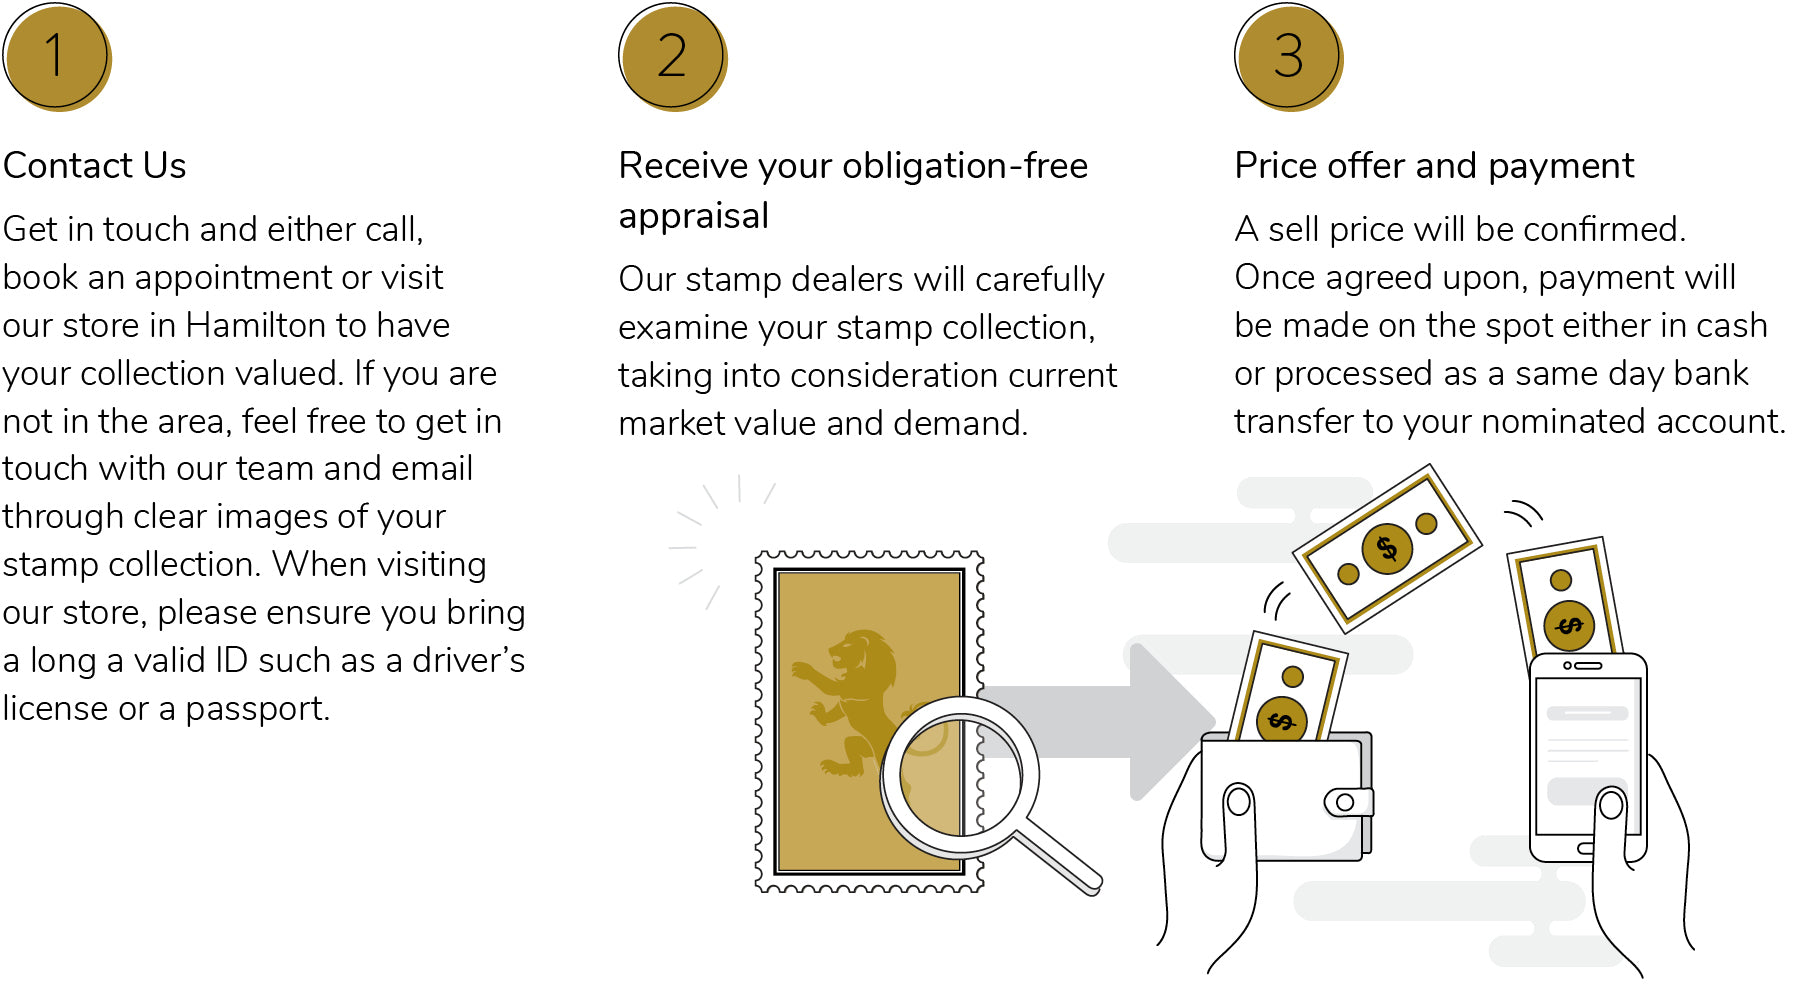 HOW TO SELL YOUR STAMP COLLECTION